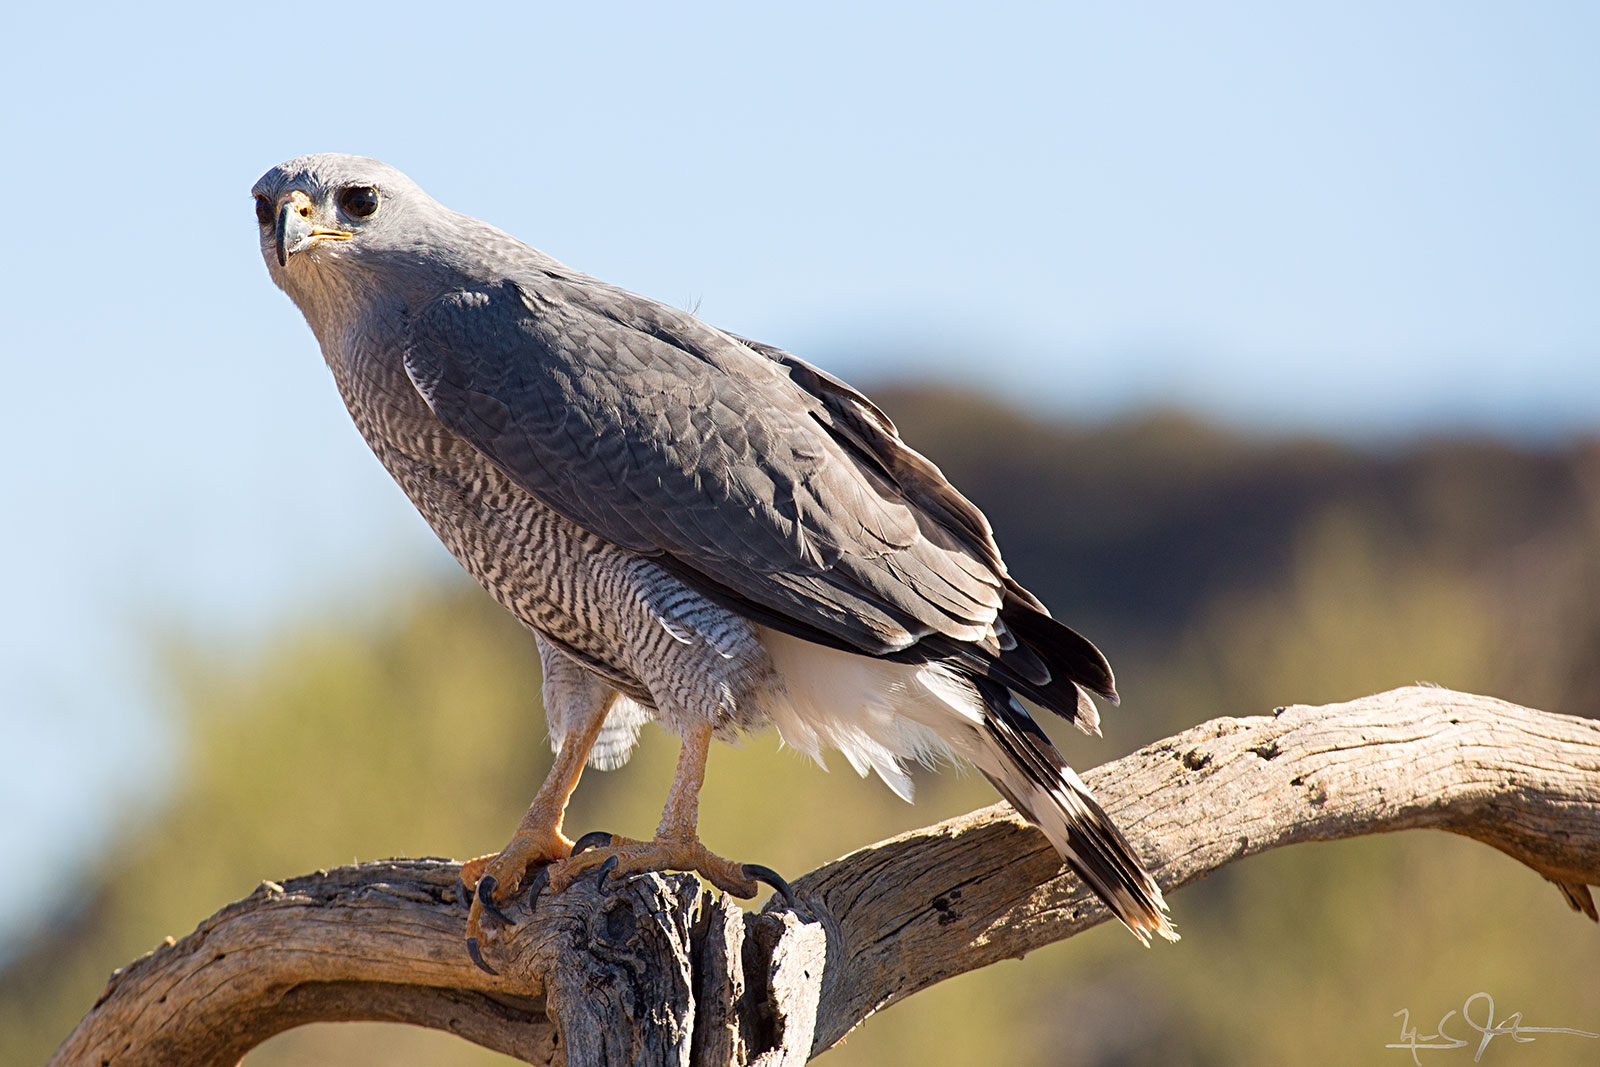 The Grey Hawk,  Buteo plagiatus,  is found only in the most southern areas of the United States, and migrate further south in Winter.